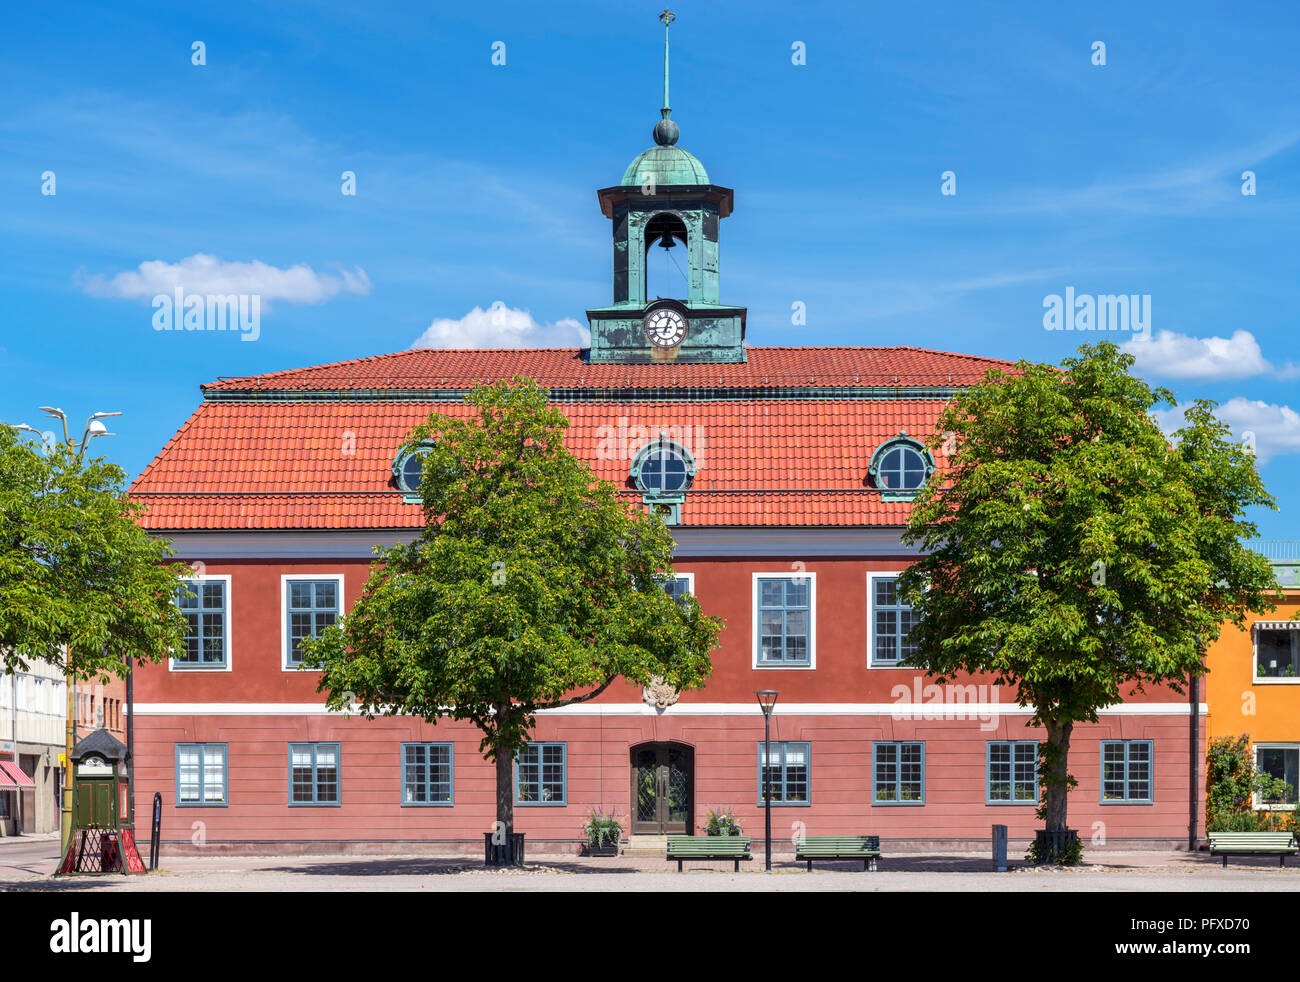 Town Hall in the Main Square (Stora Torget), Sala, Västmanland, Sweden - Stock Image